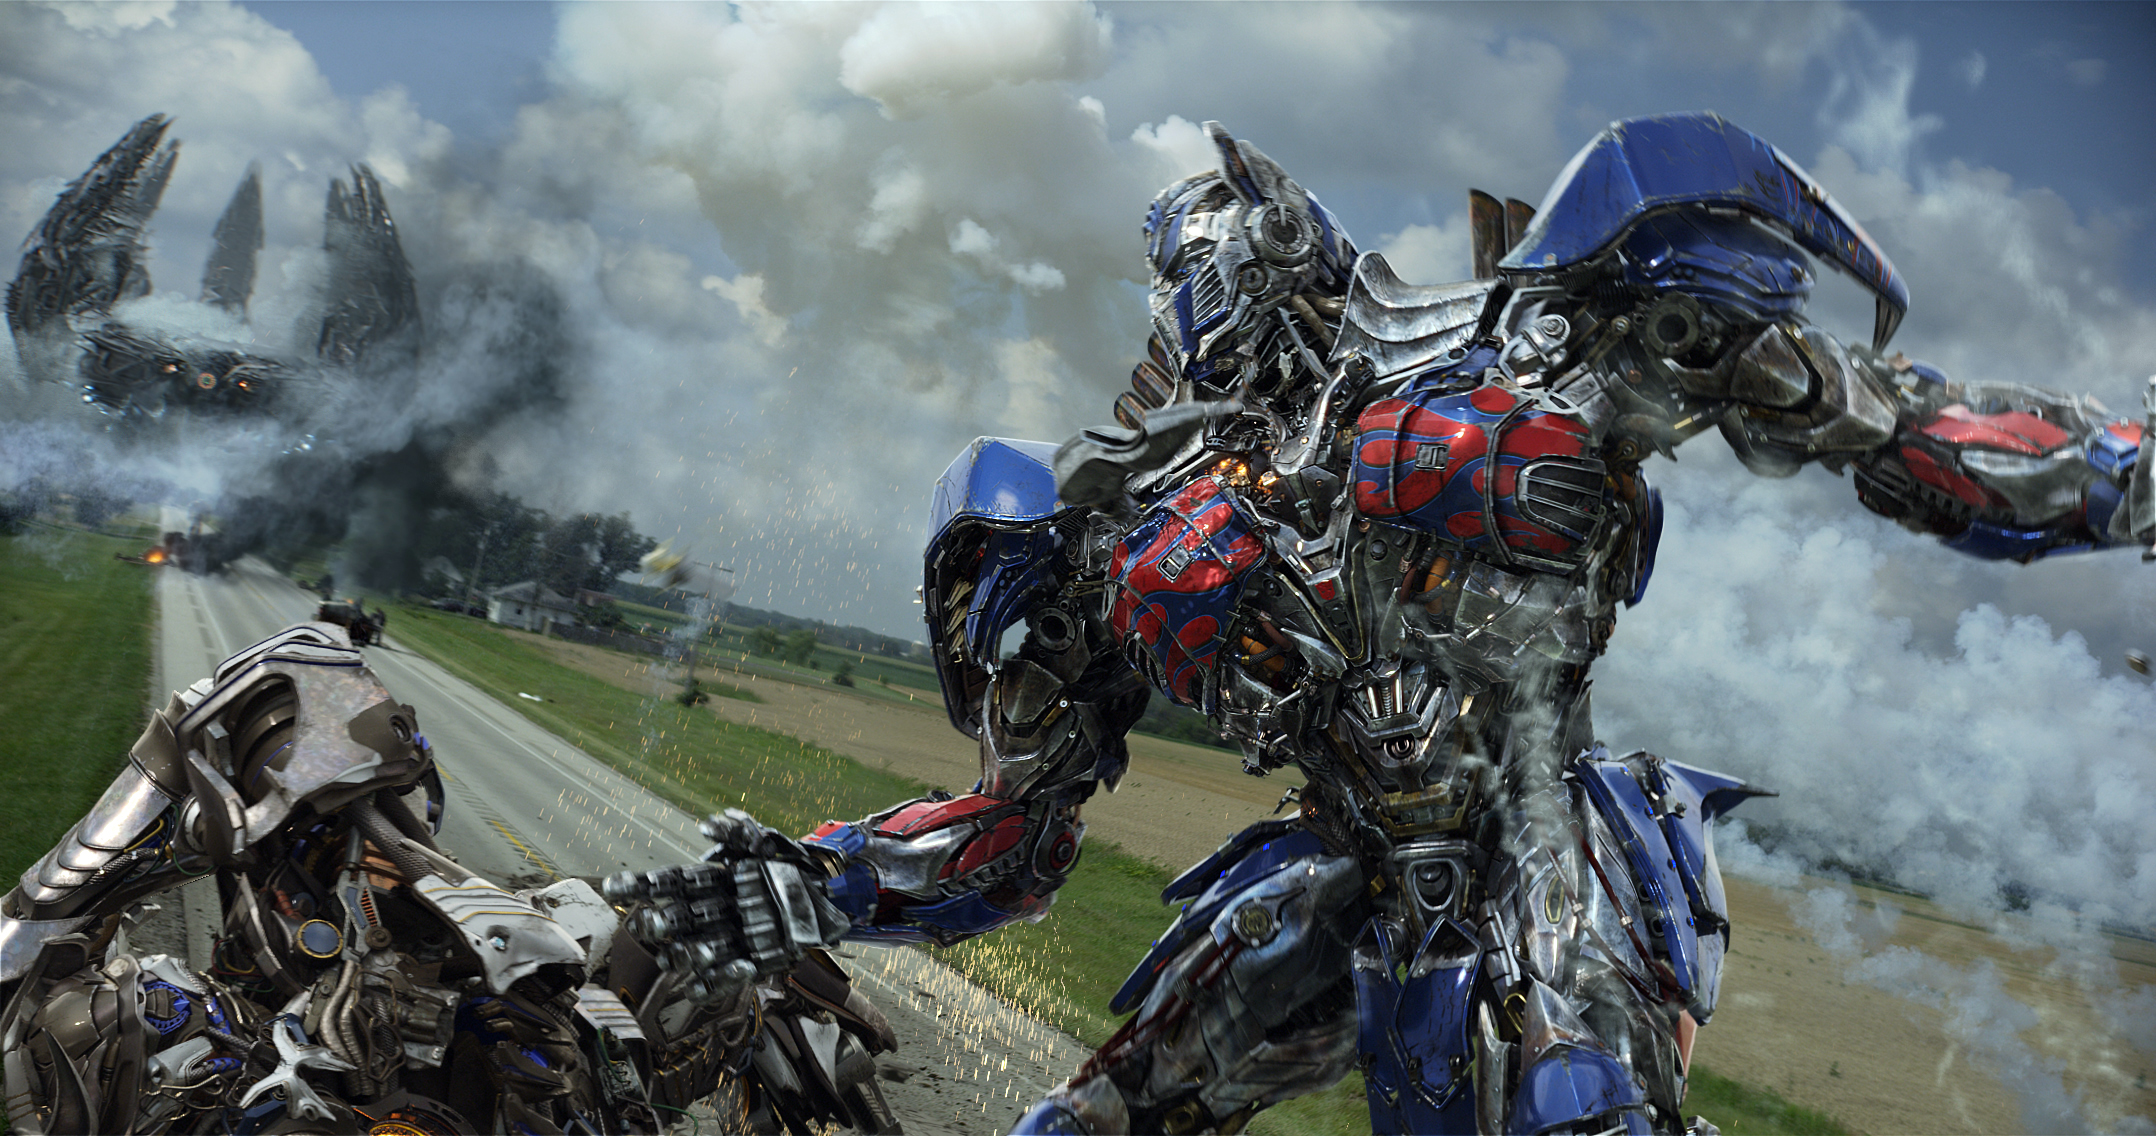 "<p>Get ready for more Optimus Prime, as three new ""Transformer"" movies are coming in the next three years.</p>"